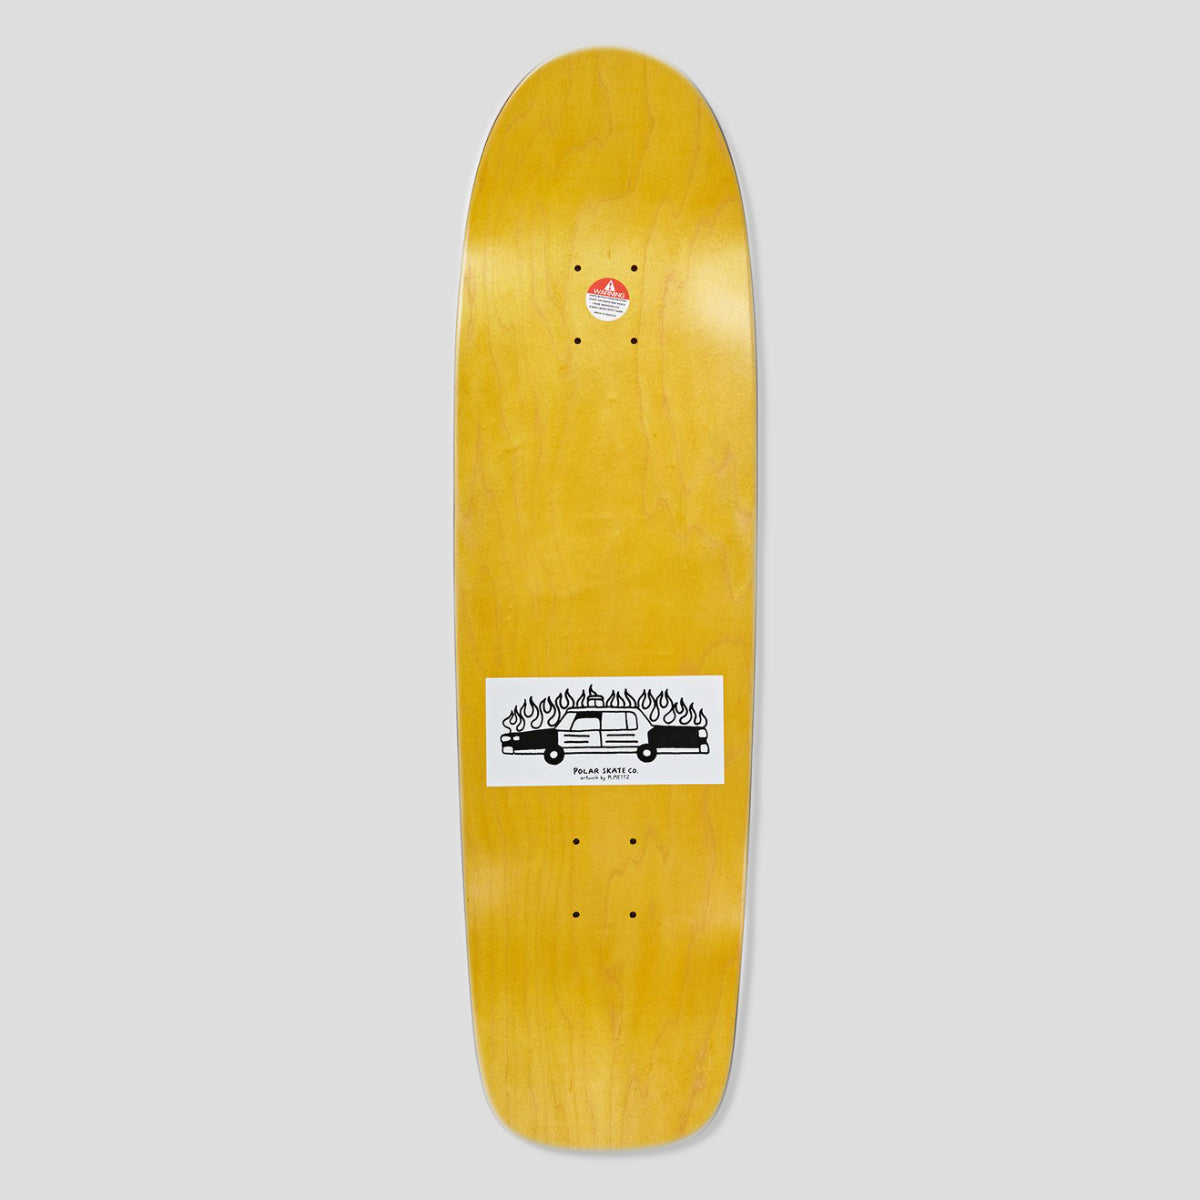 "POLAR SKATE CO. HJALTE HALBERG ""ABUSE OF POWER"" DECK SURF SHAPE"